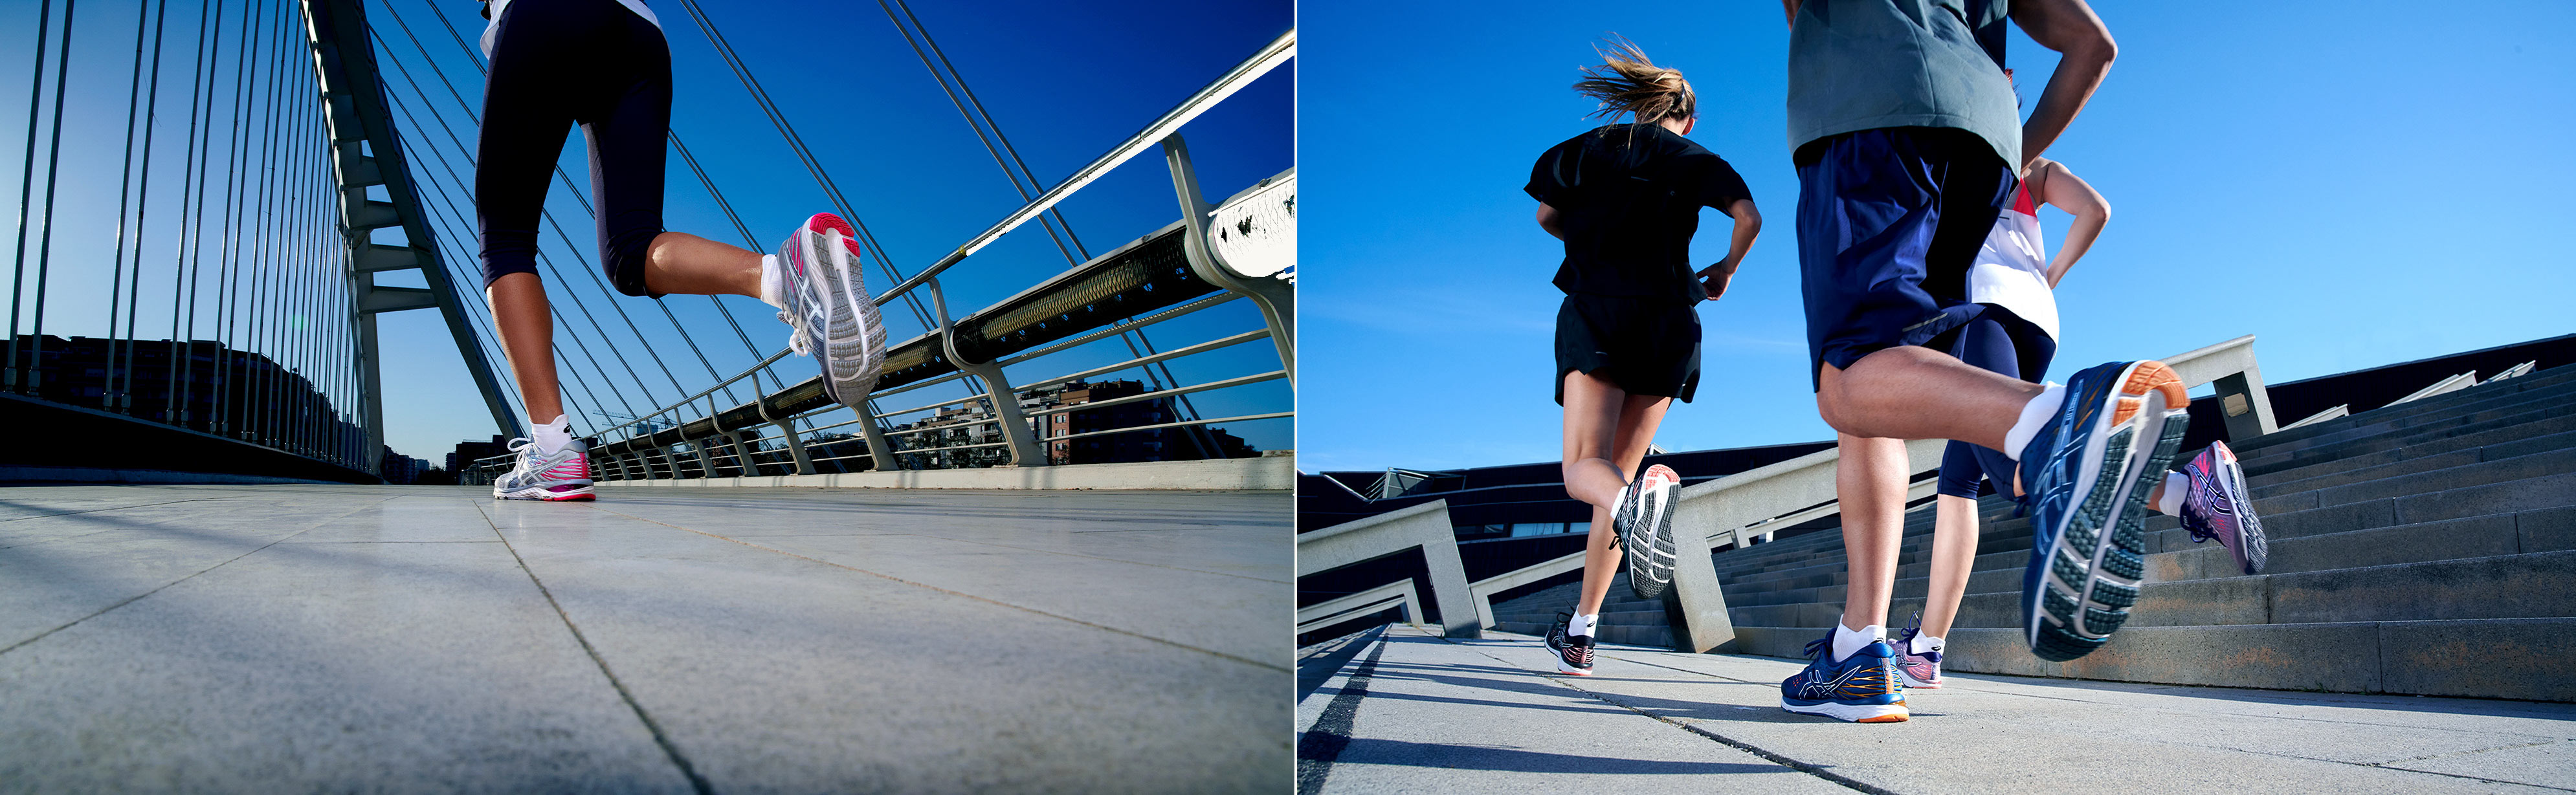 Good Boy Wolf Photographer, filmic portrait,  group of runners running along some stairs for Asics